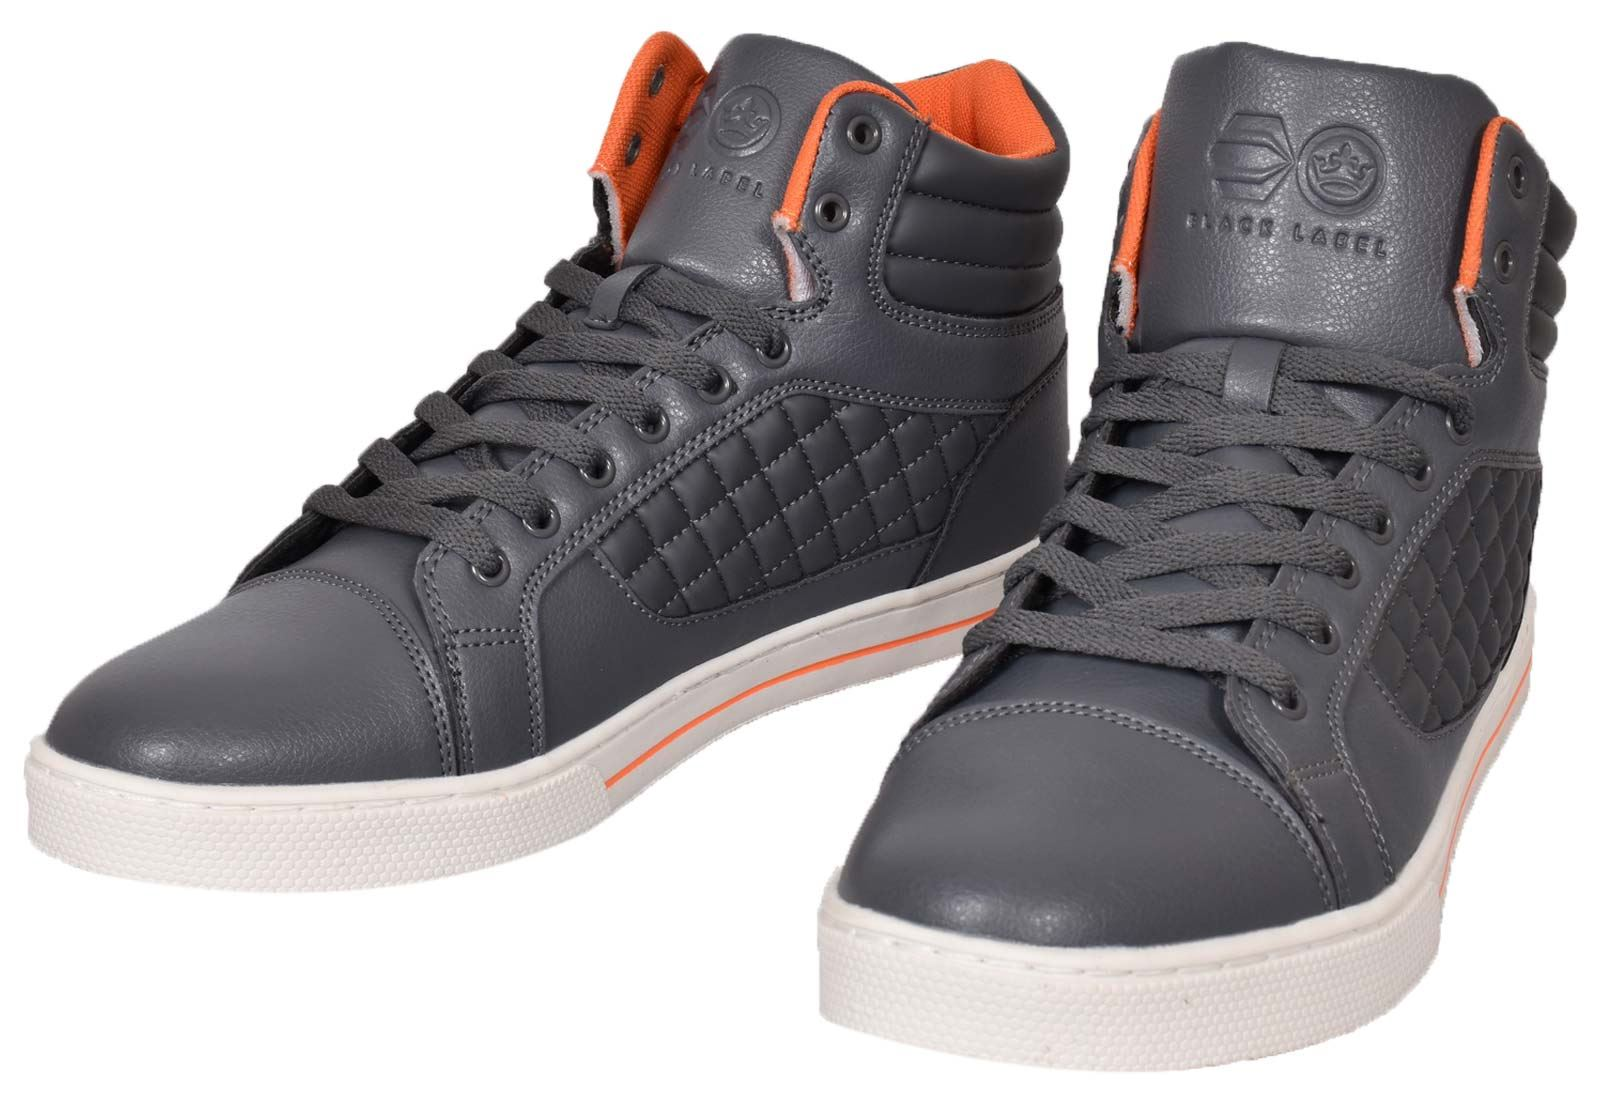 Mens-Trainers-Lace-up-Crosshatch-High-Tops-Ankle-Padded-Shoes-New-UK-Sizes-7-12 thumbnail 11